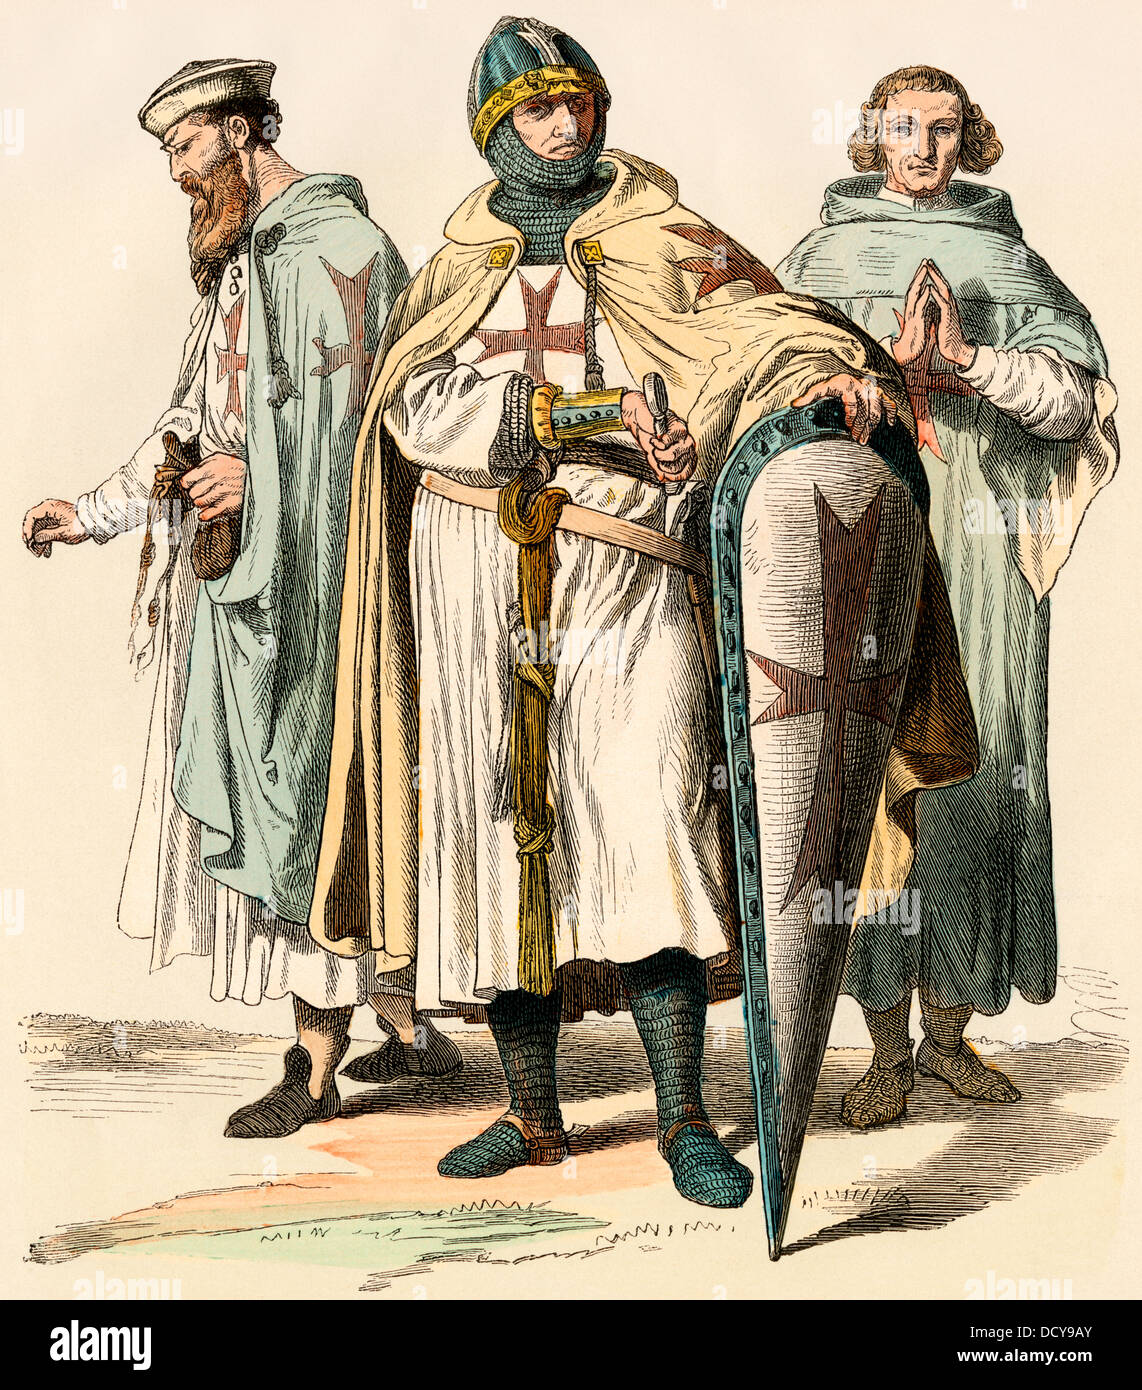 Templar knights of the time of the Crusades. Hand-colored print - Stock Image